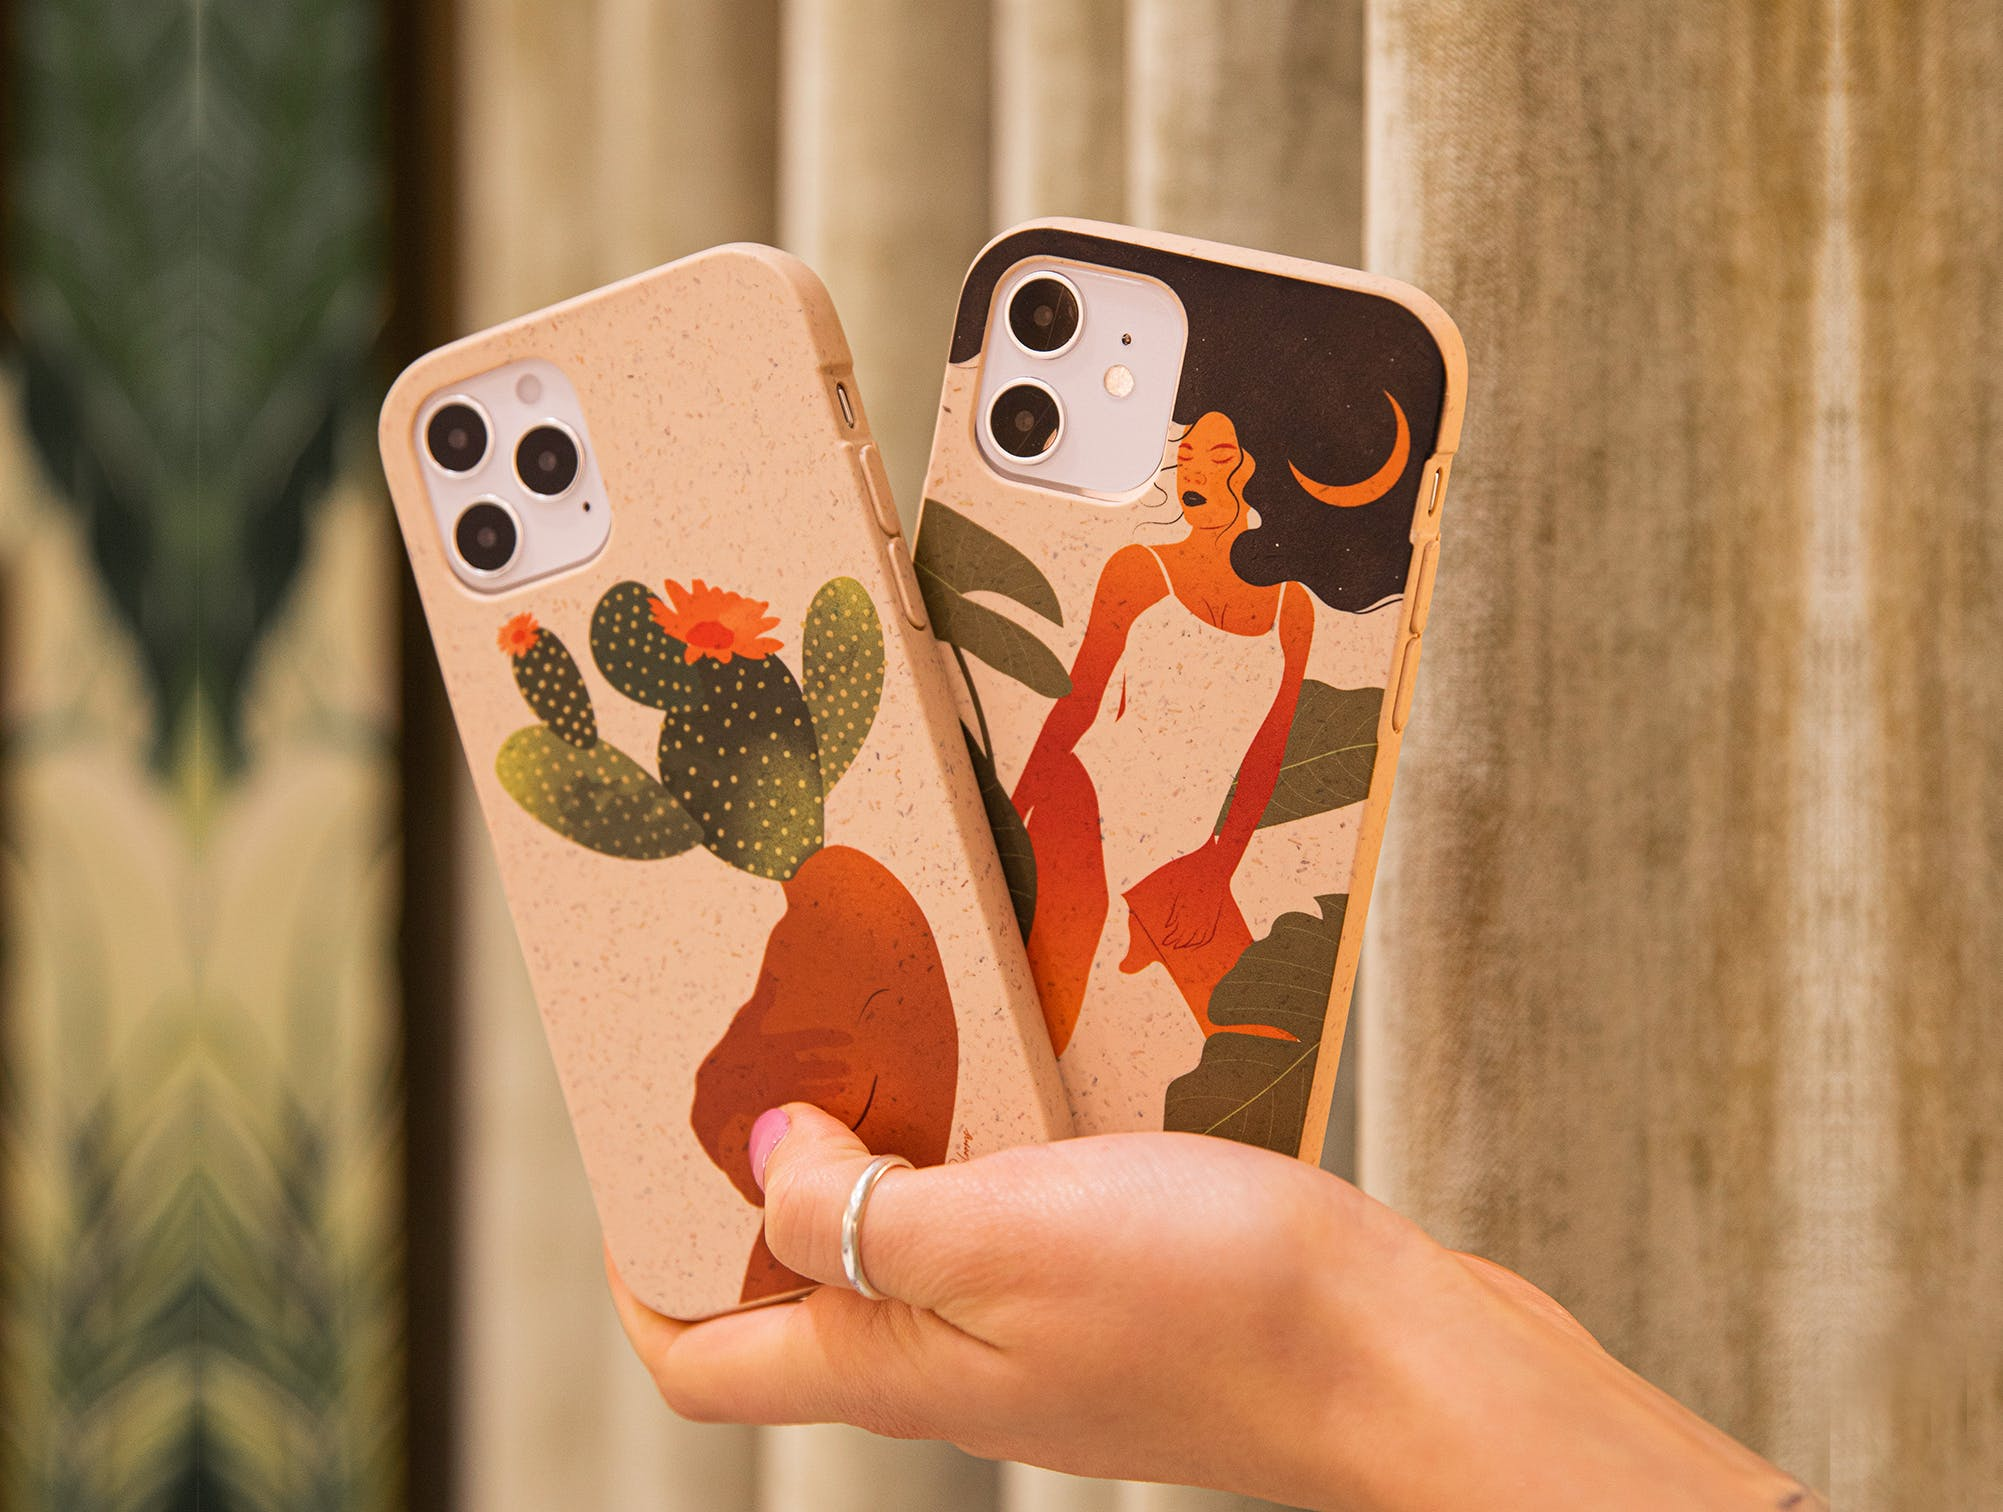 PerlyBlooms Pela Case biodegradable eco-friendly phone cases